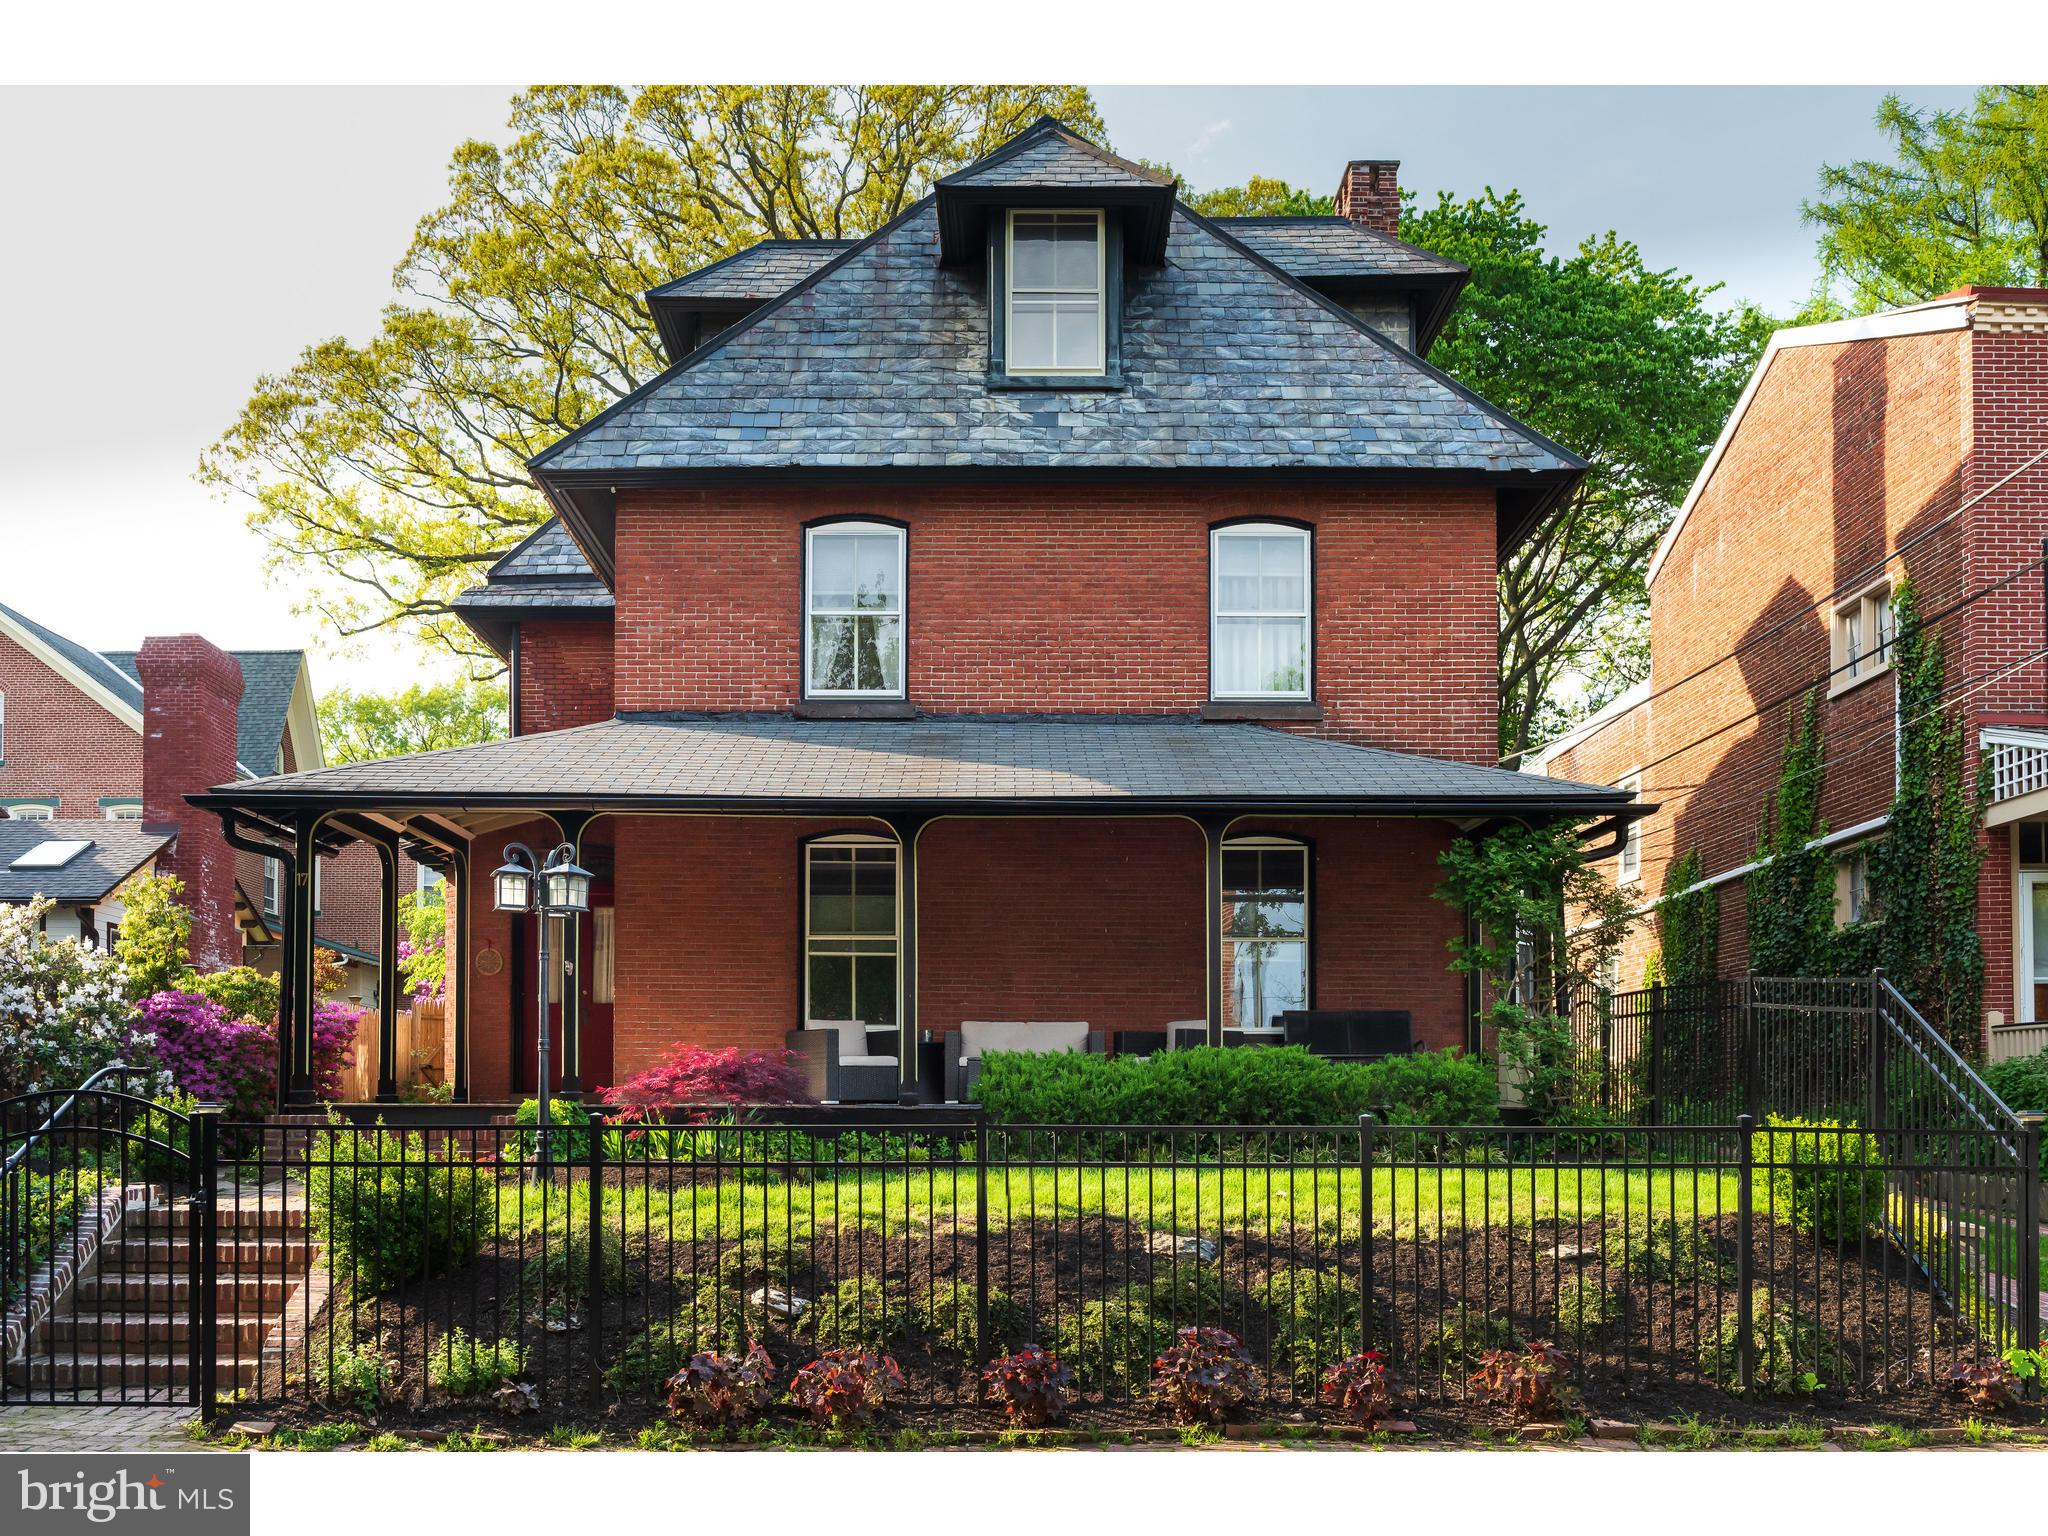 17 W BIDDLE STREET, WEST CHESTER, PA 19380